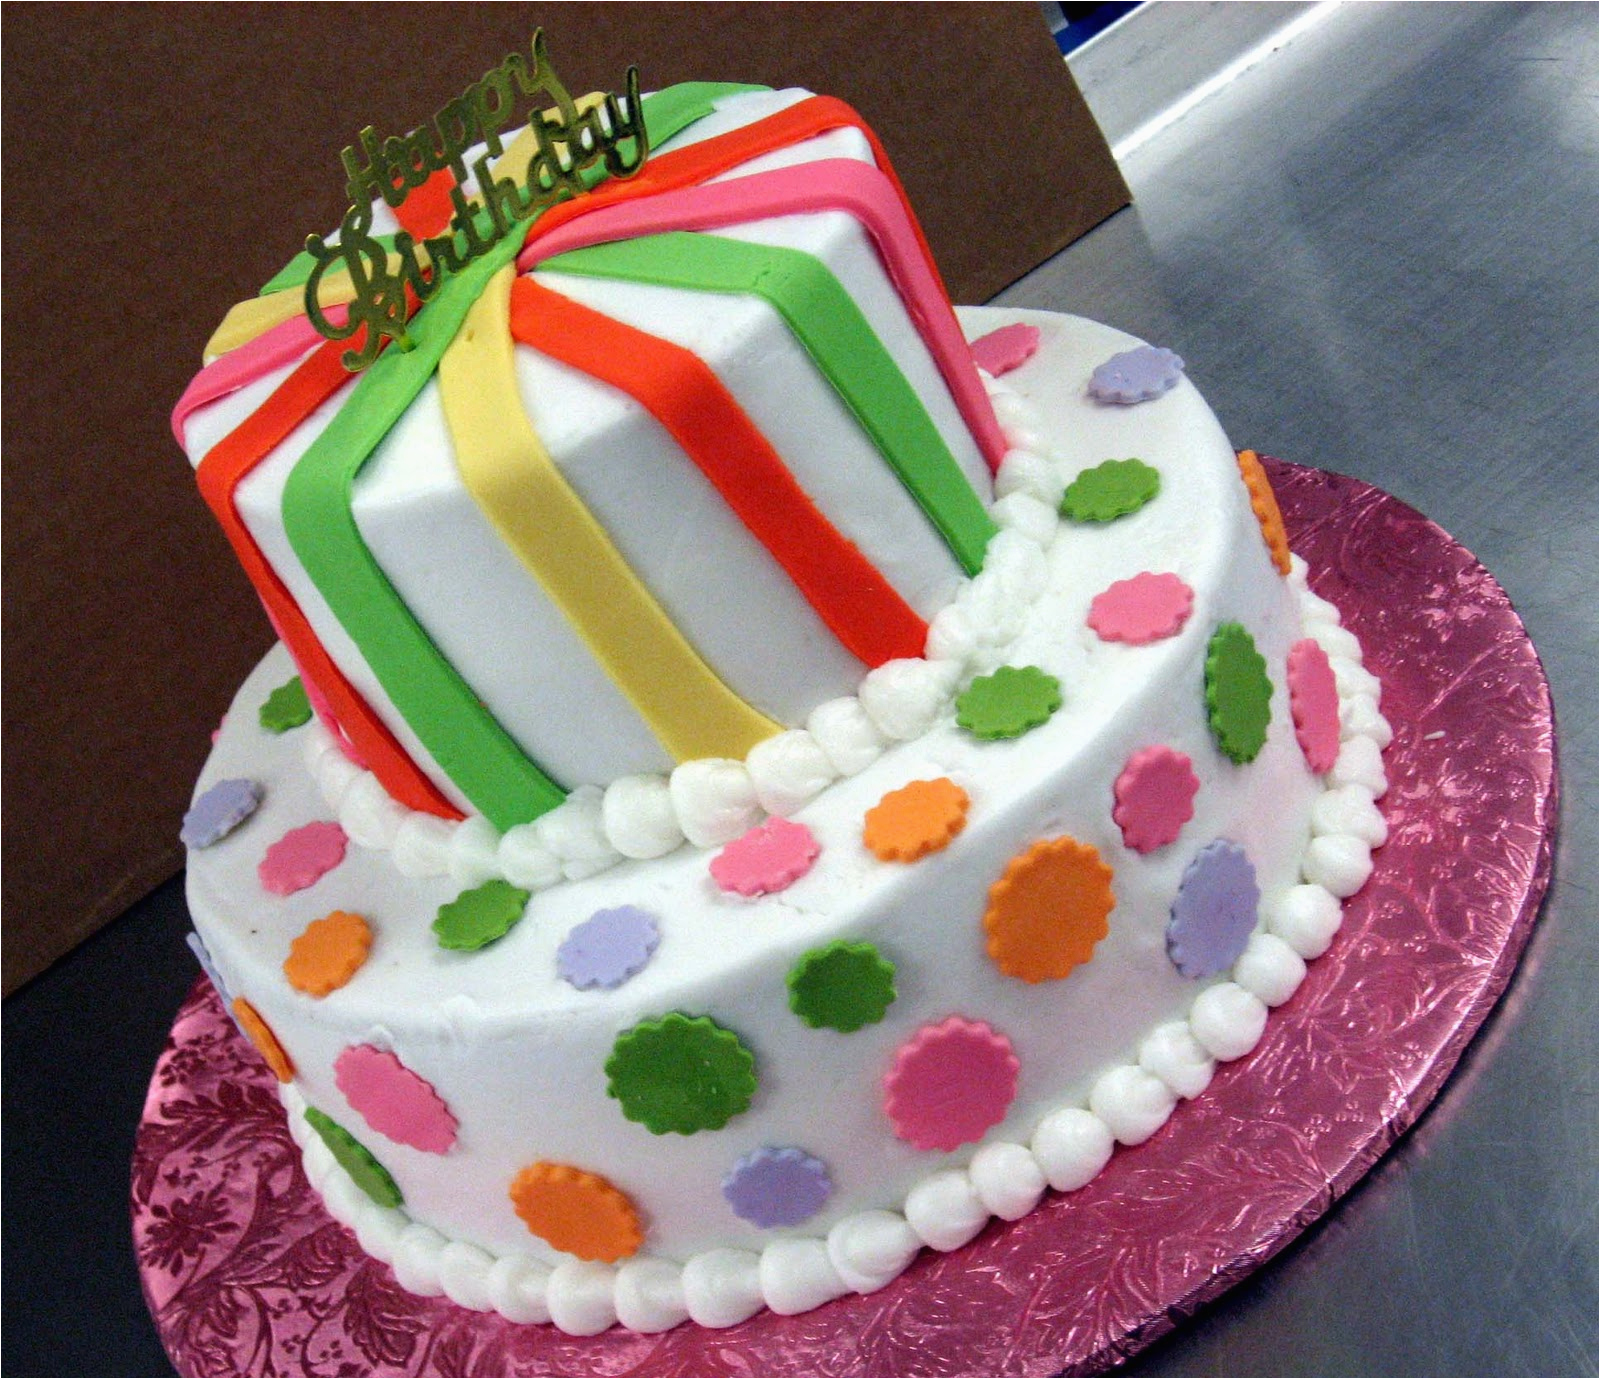 Decorated Birthday Cakes At Walmart Cake Decorations For Kids